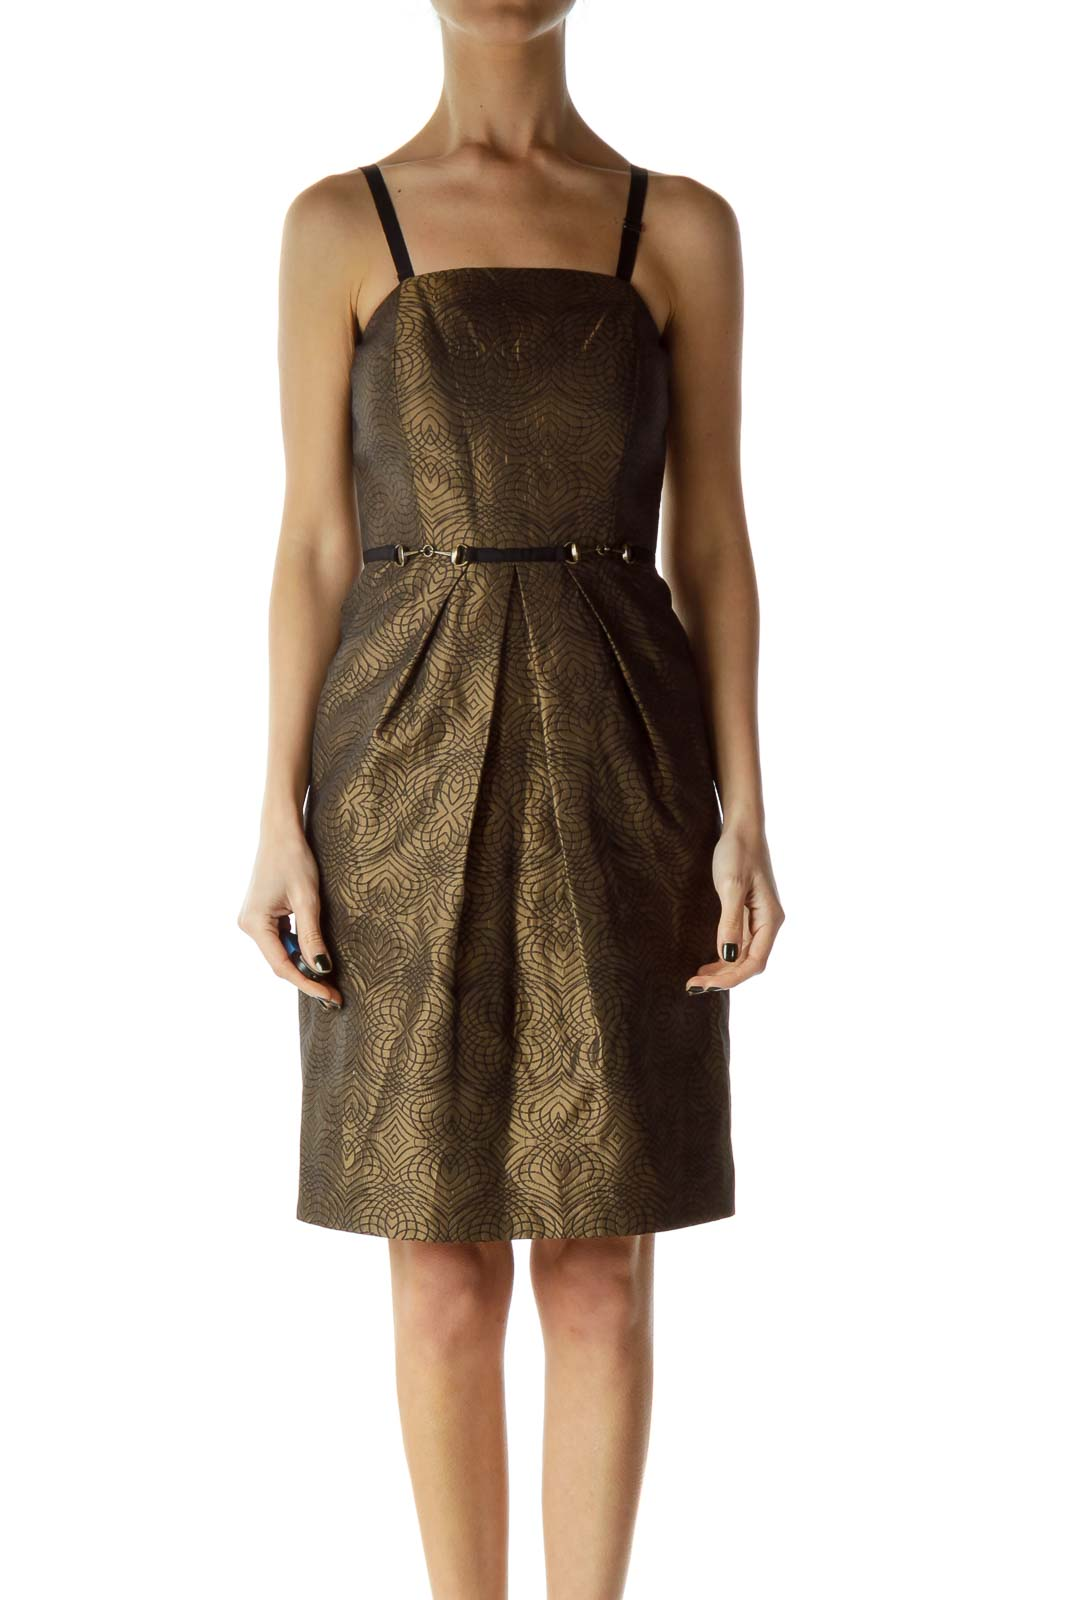 Brown Metallic Printed Cocktail Dress